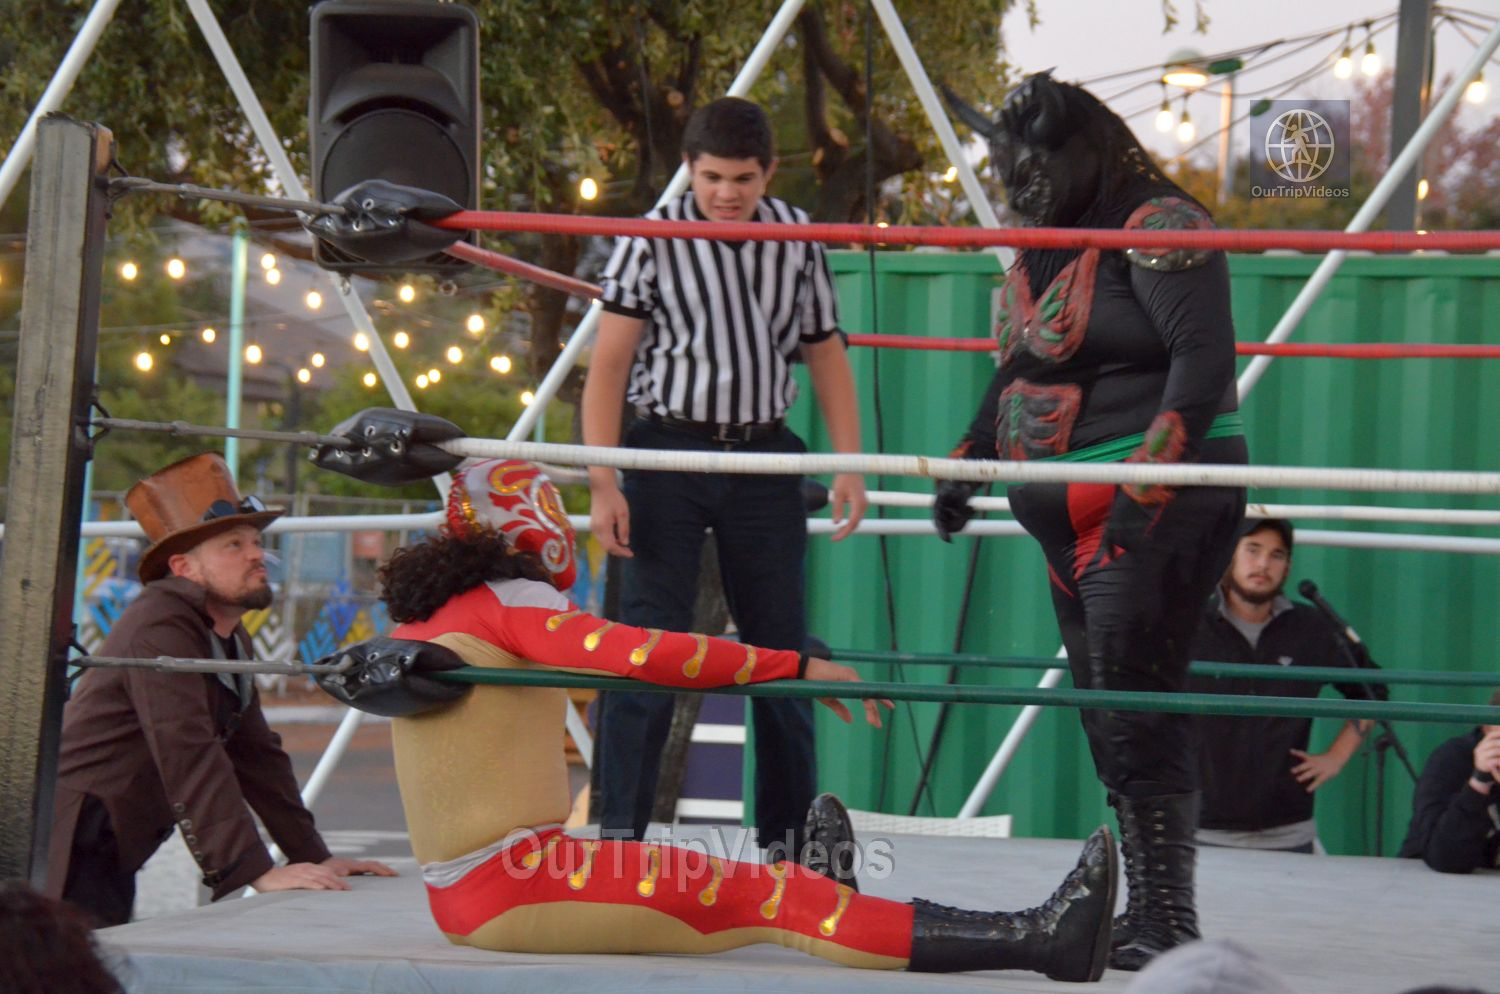 Throwdown at the Thunderdome (Luchador Wrestling), Fremont, CA, USA - Picture 13 of 25